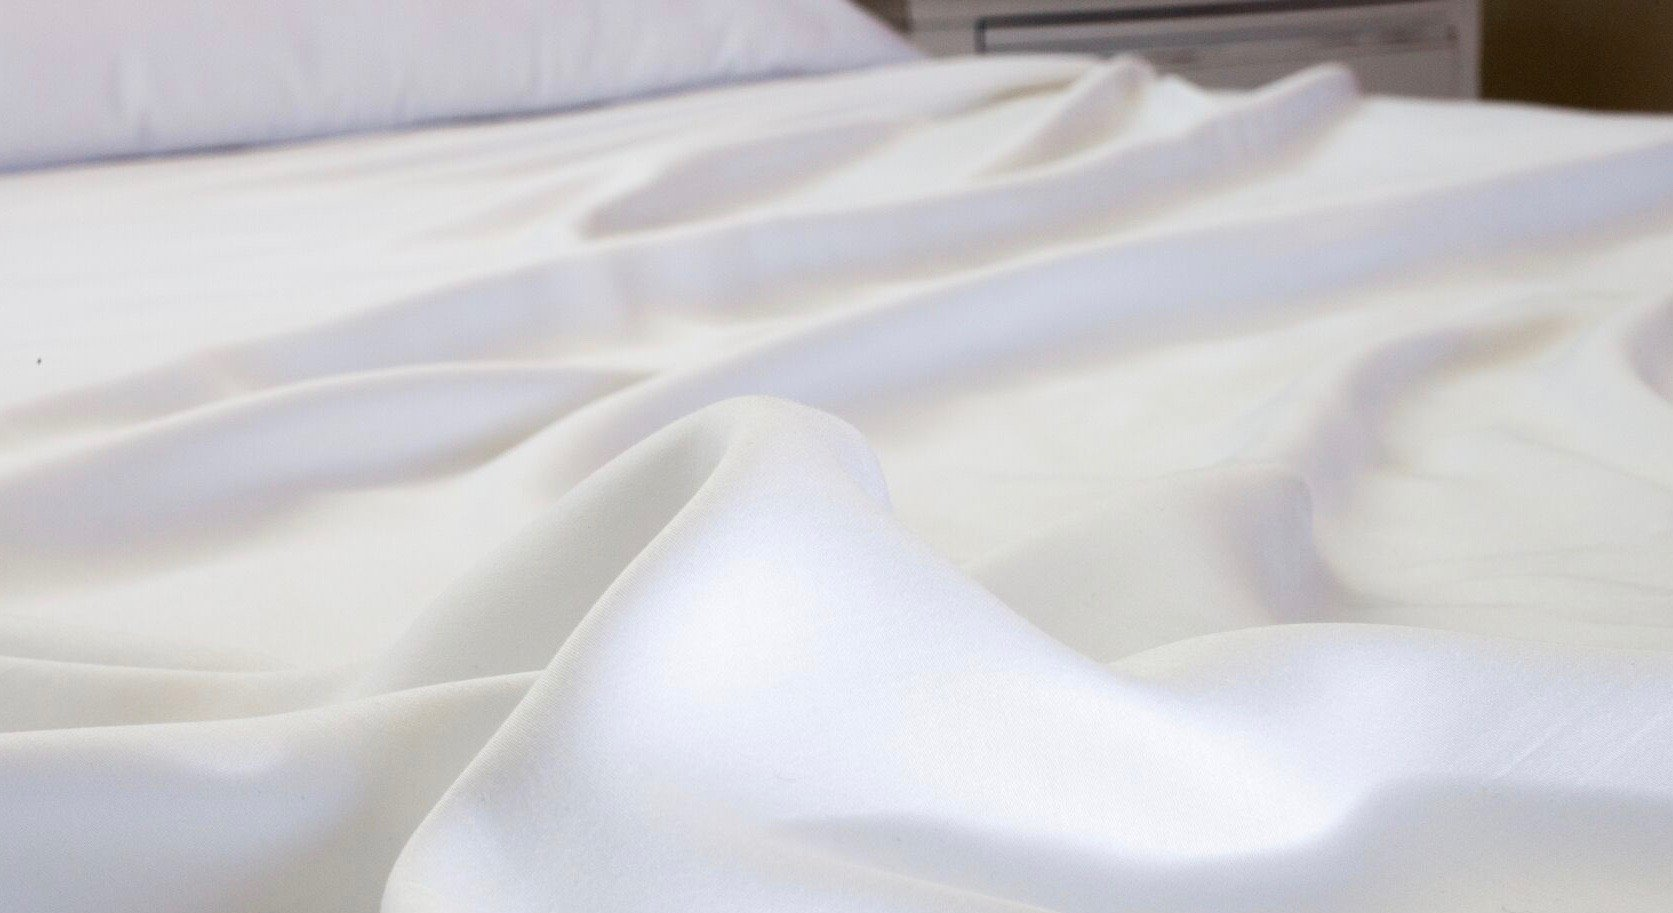 White duvet cover and sheets